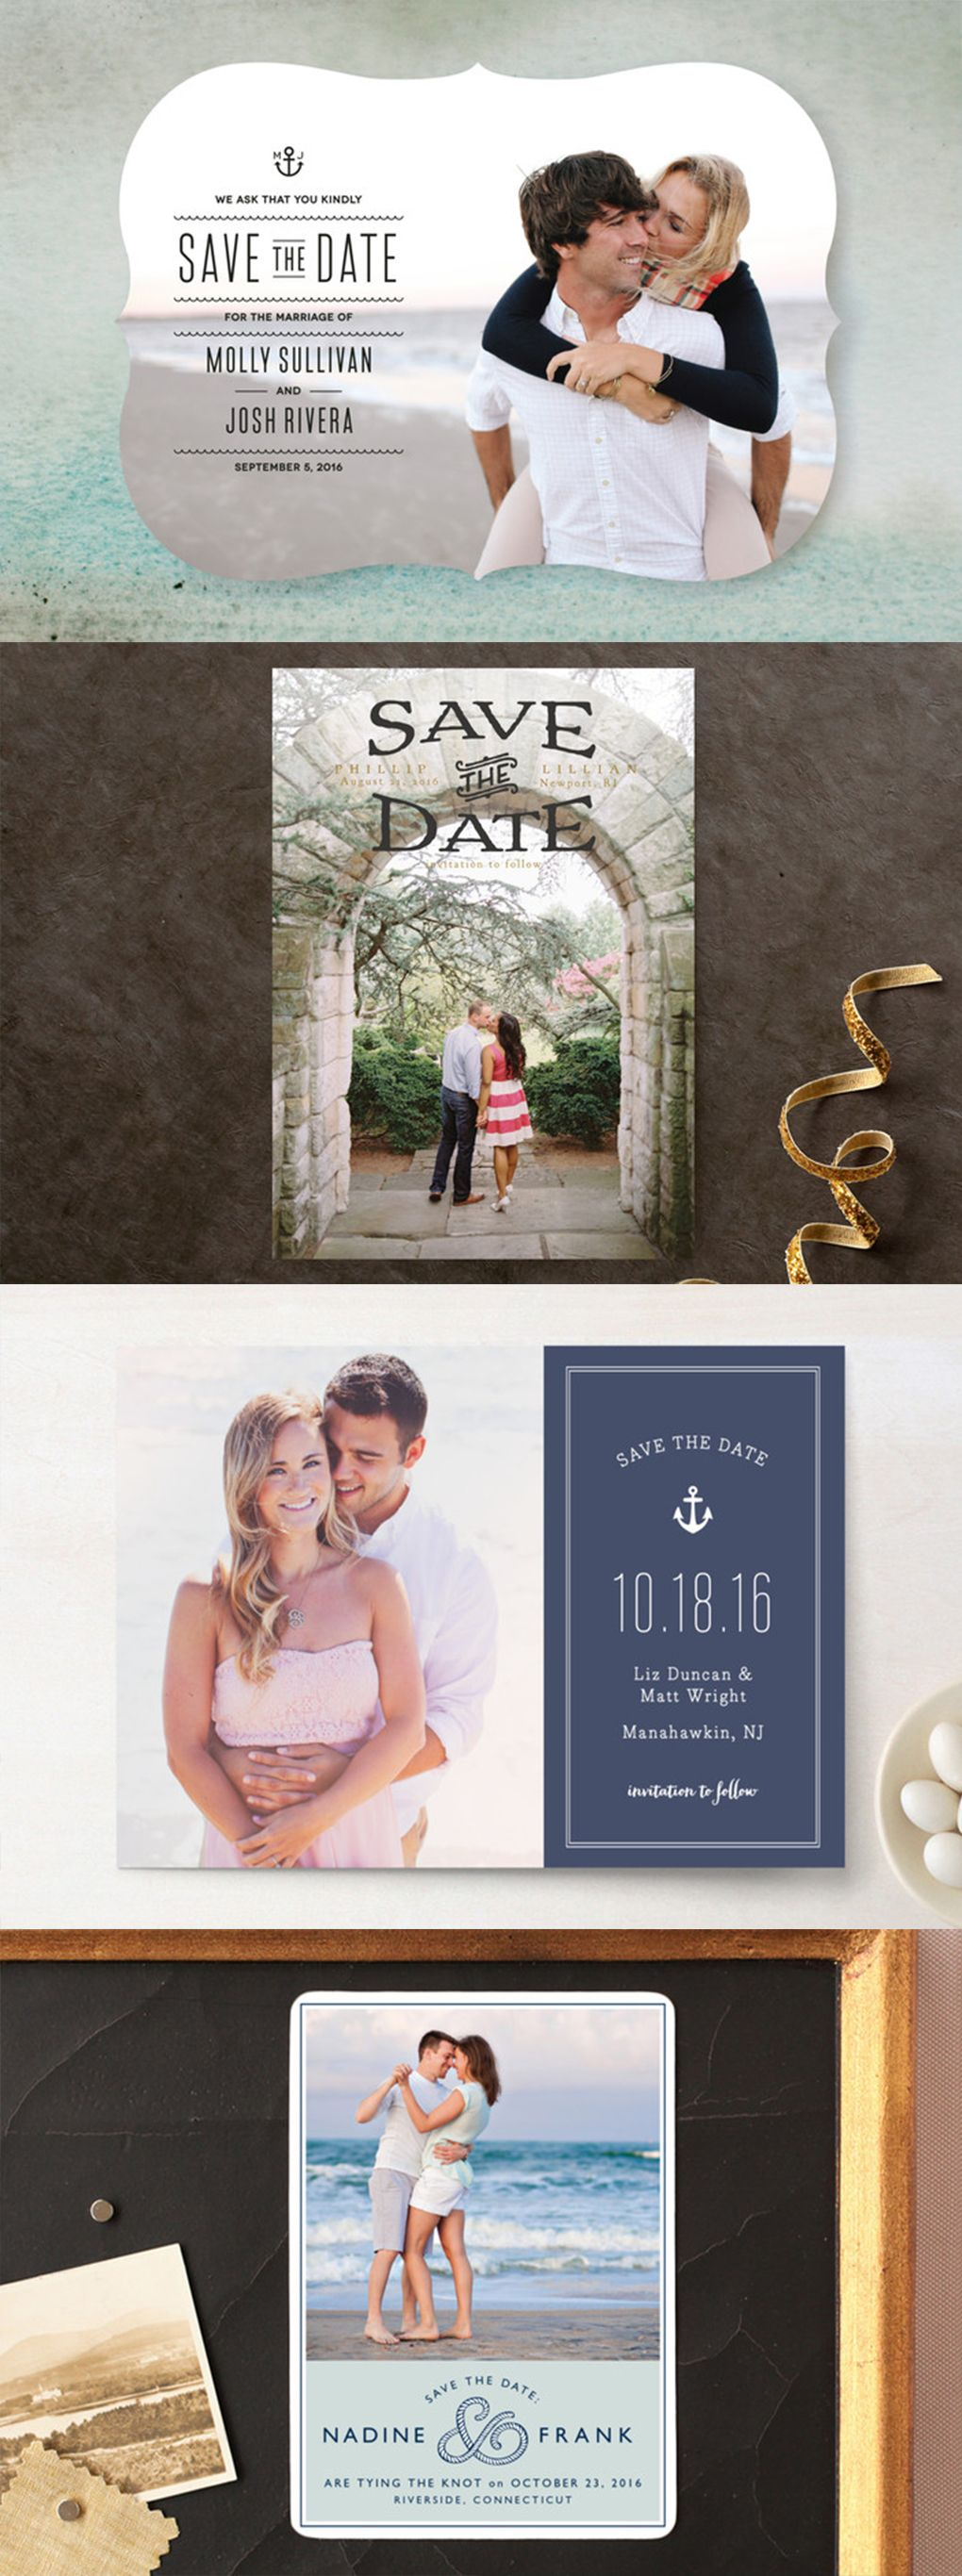 Nautical Wedding Save The Date Invitations Postcards Magnets And